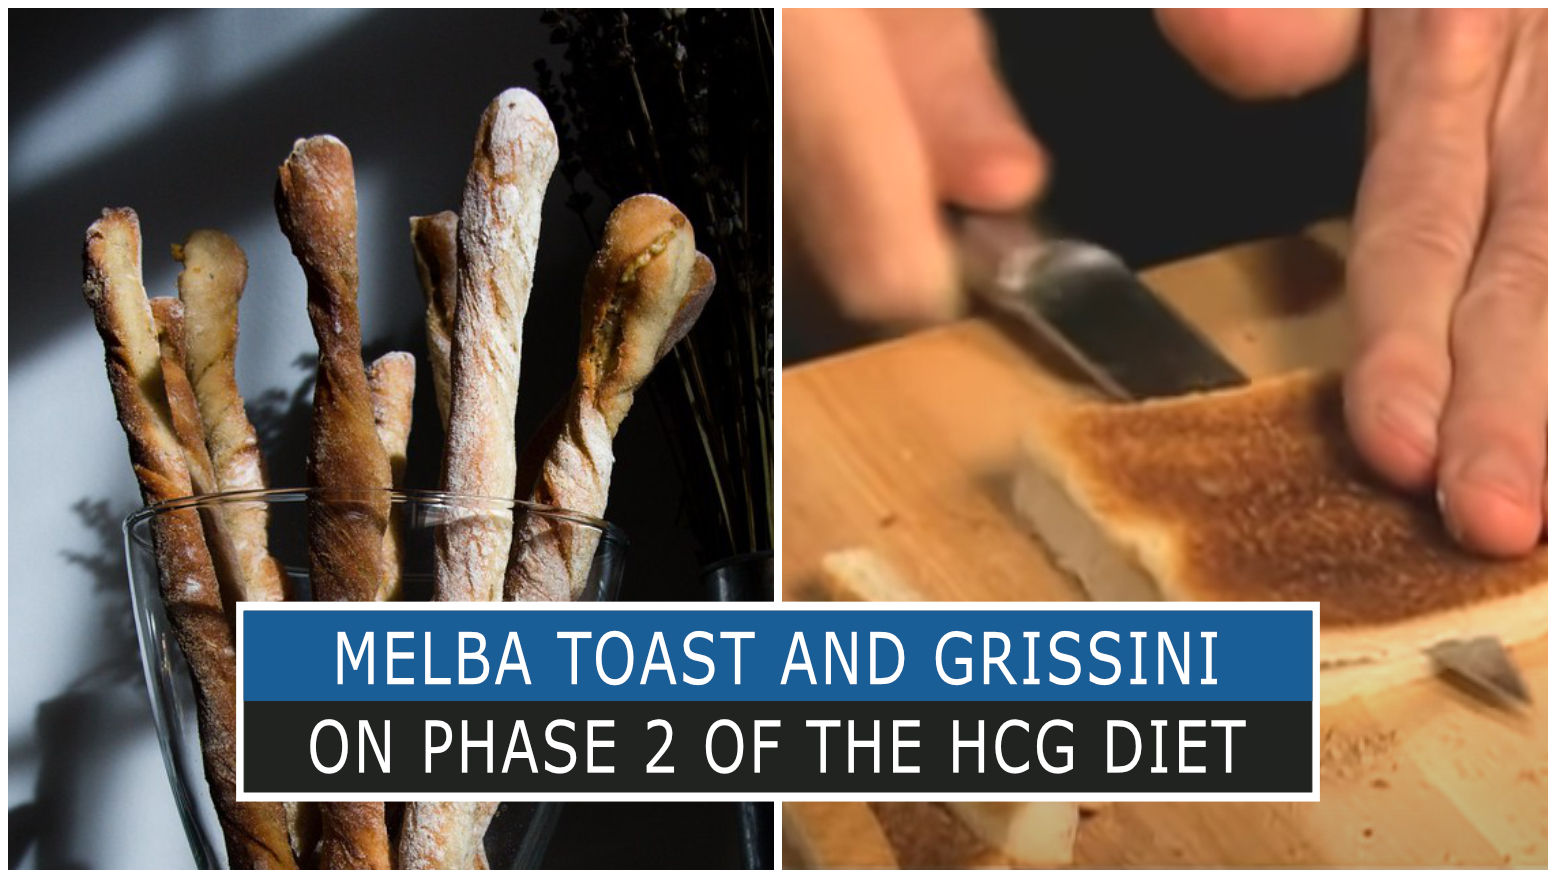 MELBA TOAST AND GRISSINI ON PHASE 2 OF THE HCG DIET